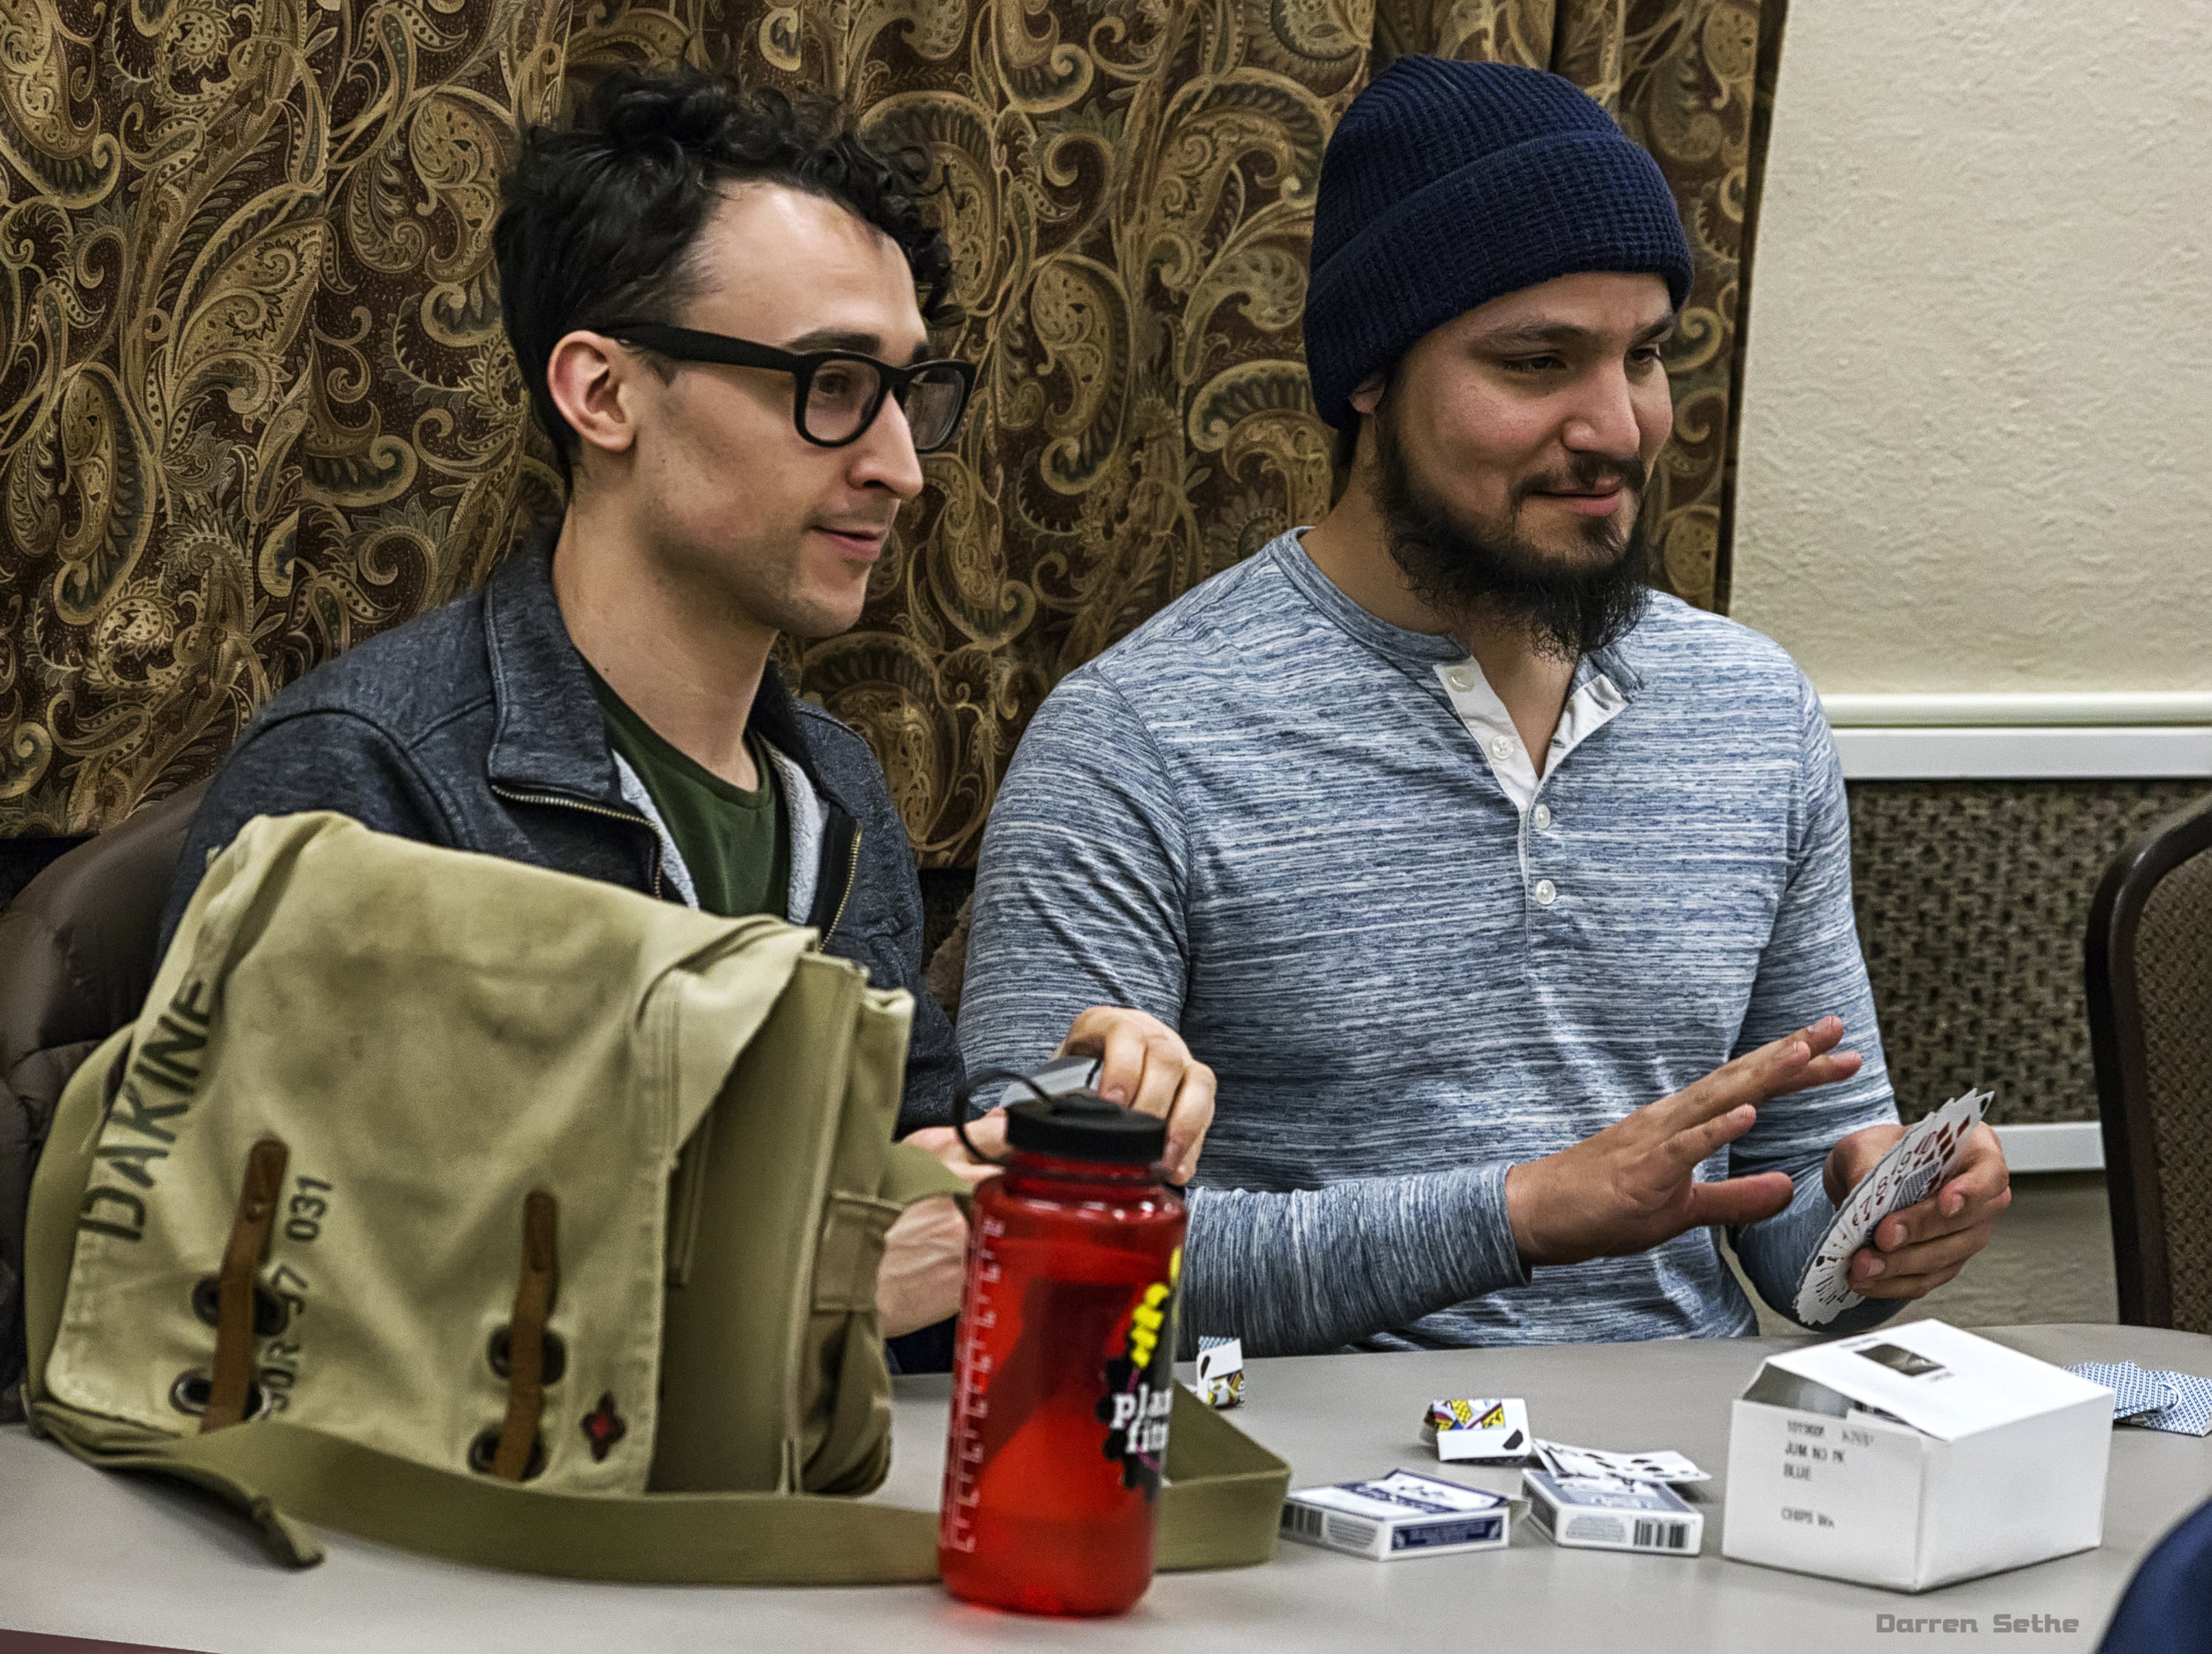 Frank Brislawn and Joseph Ruiz get free boxes of cards, and then decide to destroy everyone of them practicing their Mercury Card Folds (photo by Darren Sethe 2019)